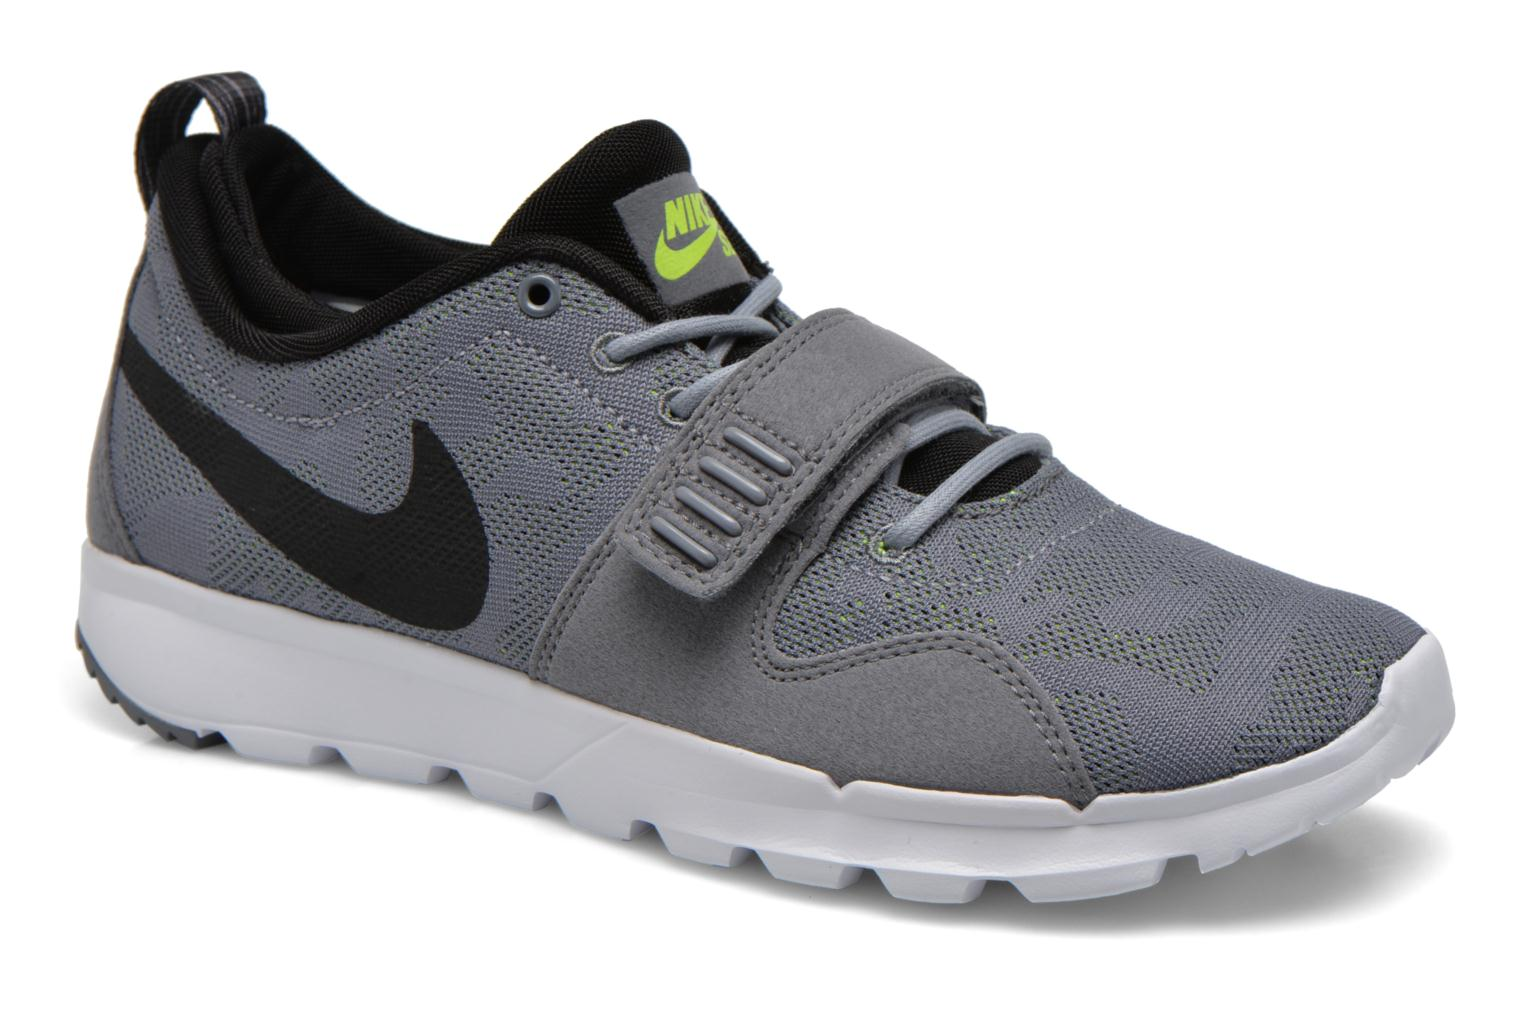 Trainerendor Cool Grey/Black-White-Volt